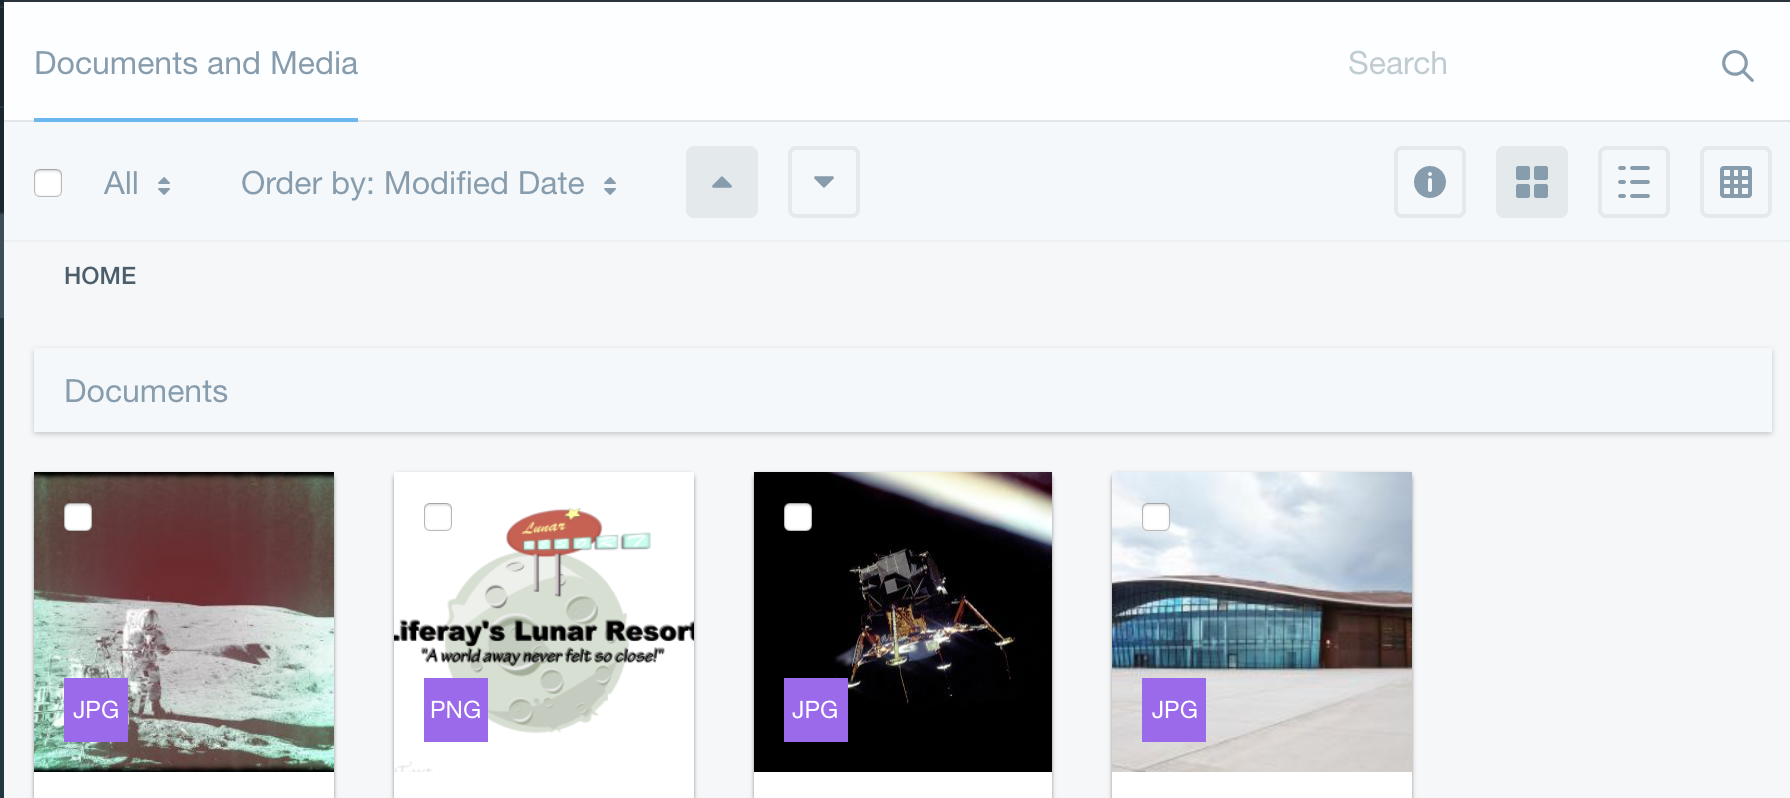 Figure 1: The Documents and Media librarys Home folder contains the Lunar Resorts existing images.